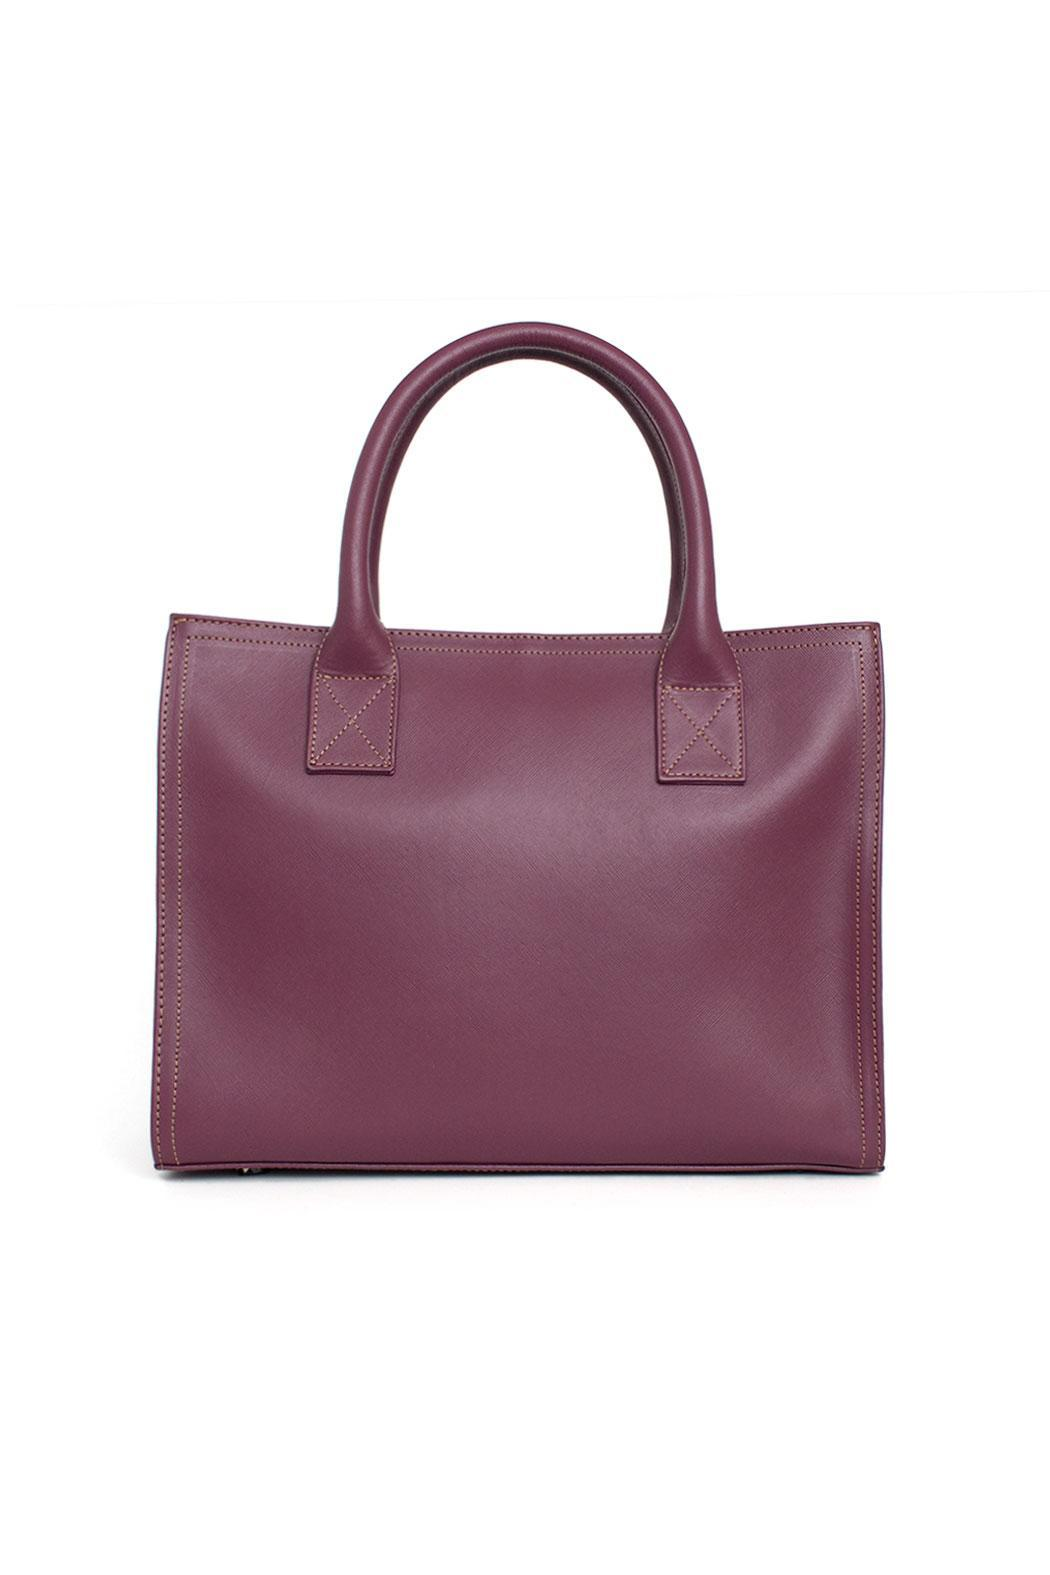 estocolmoapparel Purple Leather Handbag - Front Full Image